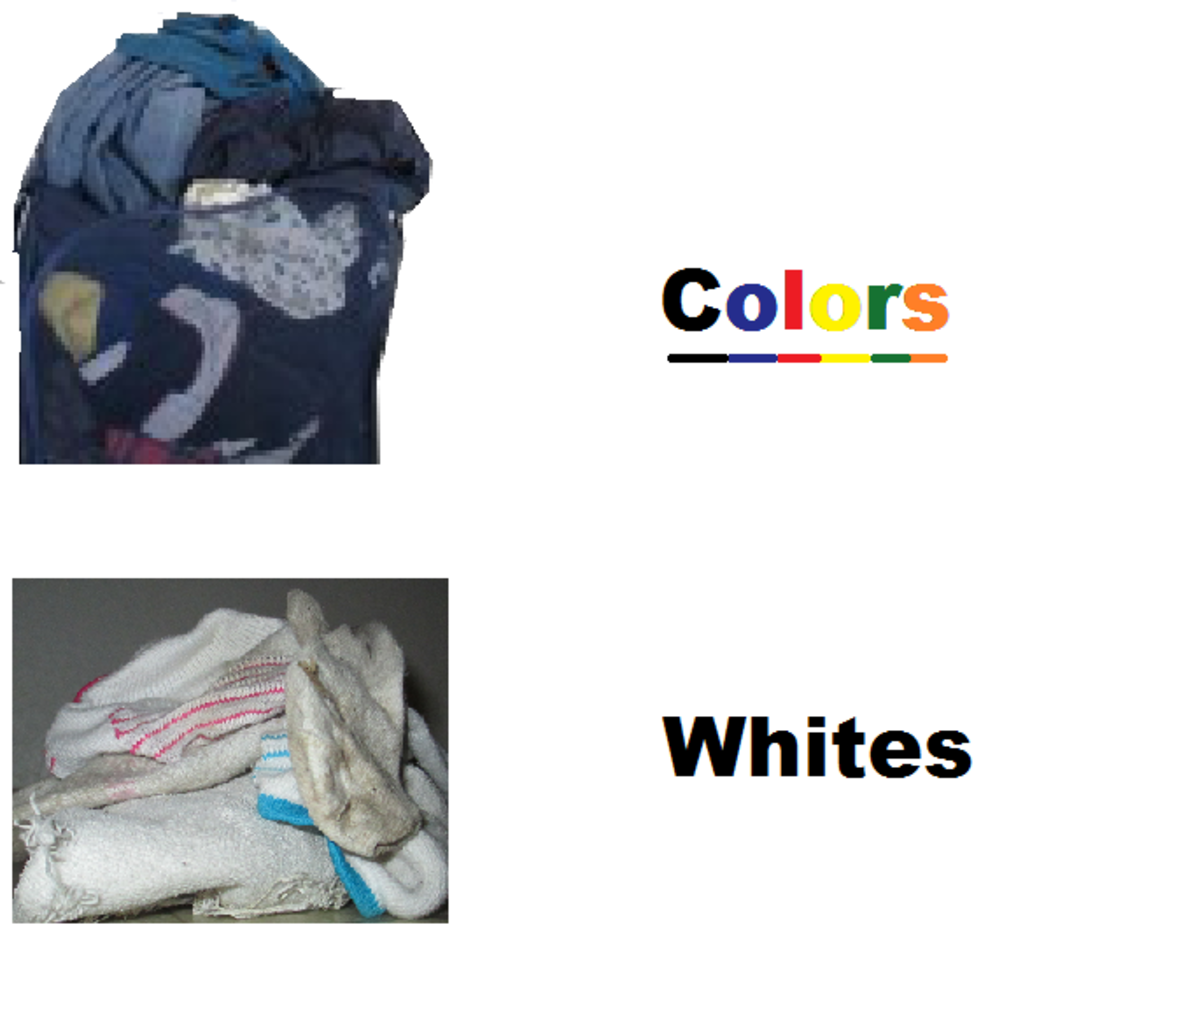 How to wash clothes make whites white and colors bright dengarden - Protect clothes colors washing ...